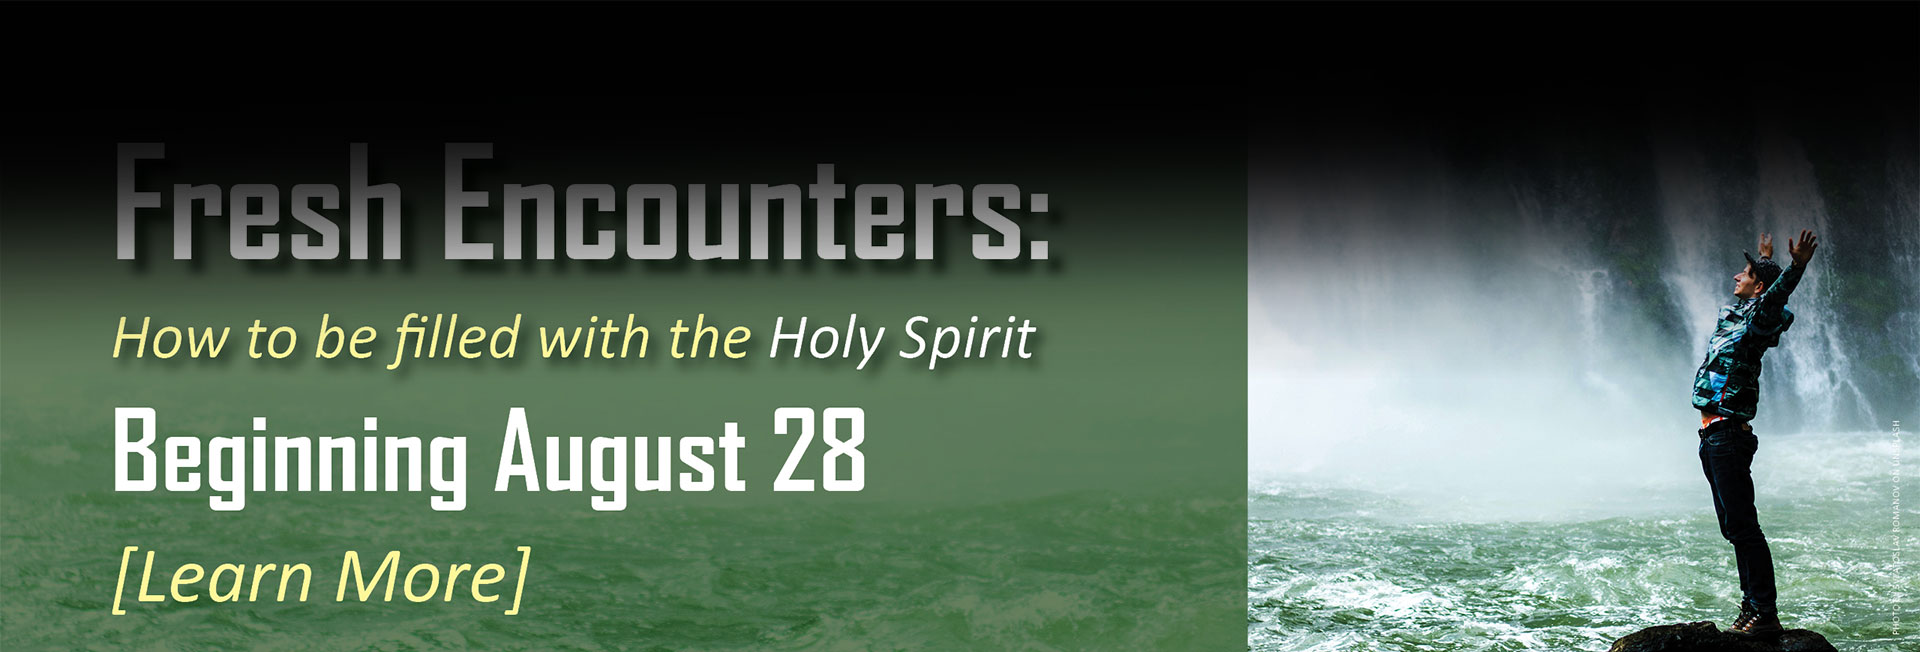 Fresh Encounters - How to be filled with the Holy Spirit Starts August 28